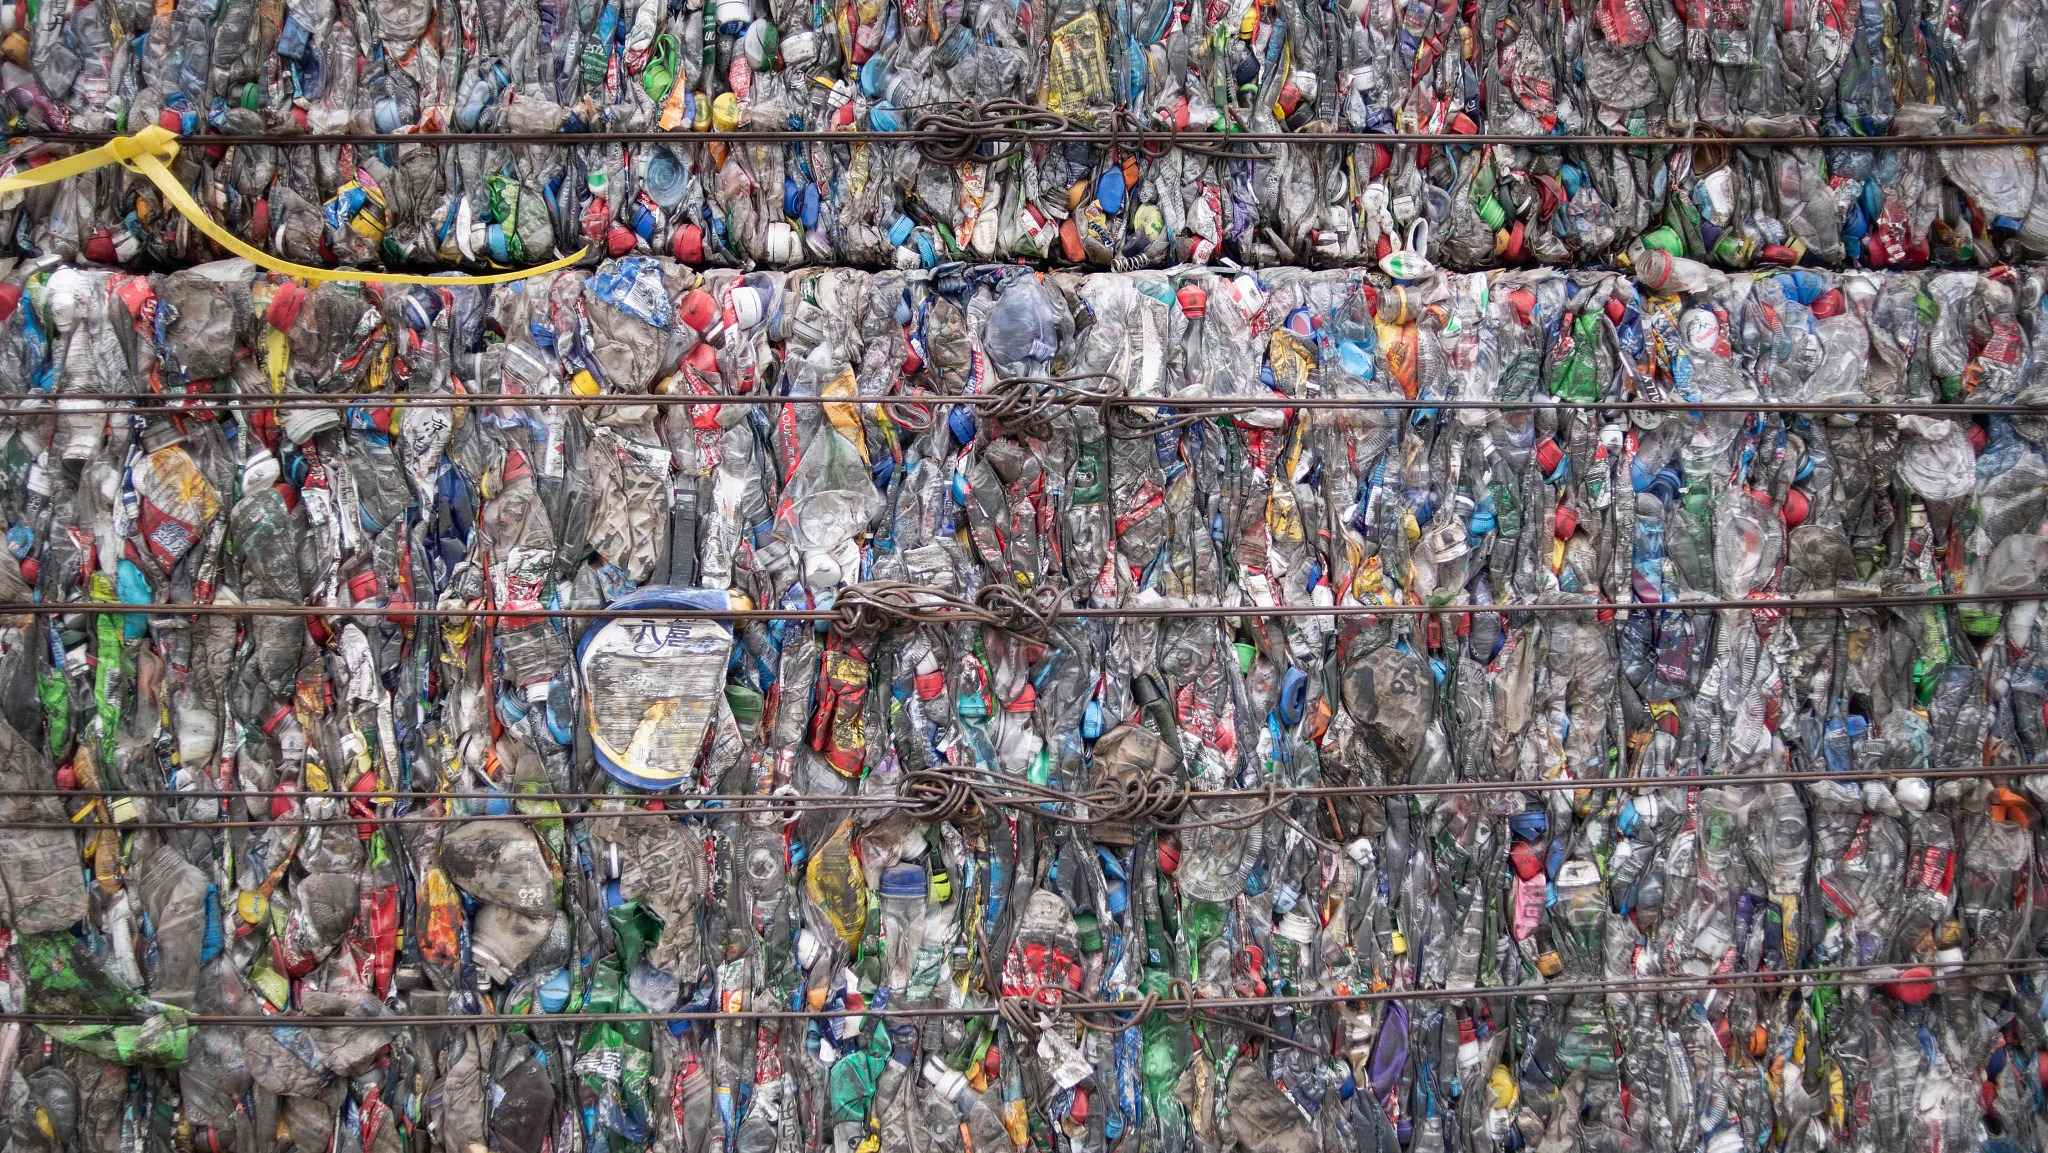 China's ban spurs world to solve plastic waste problem